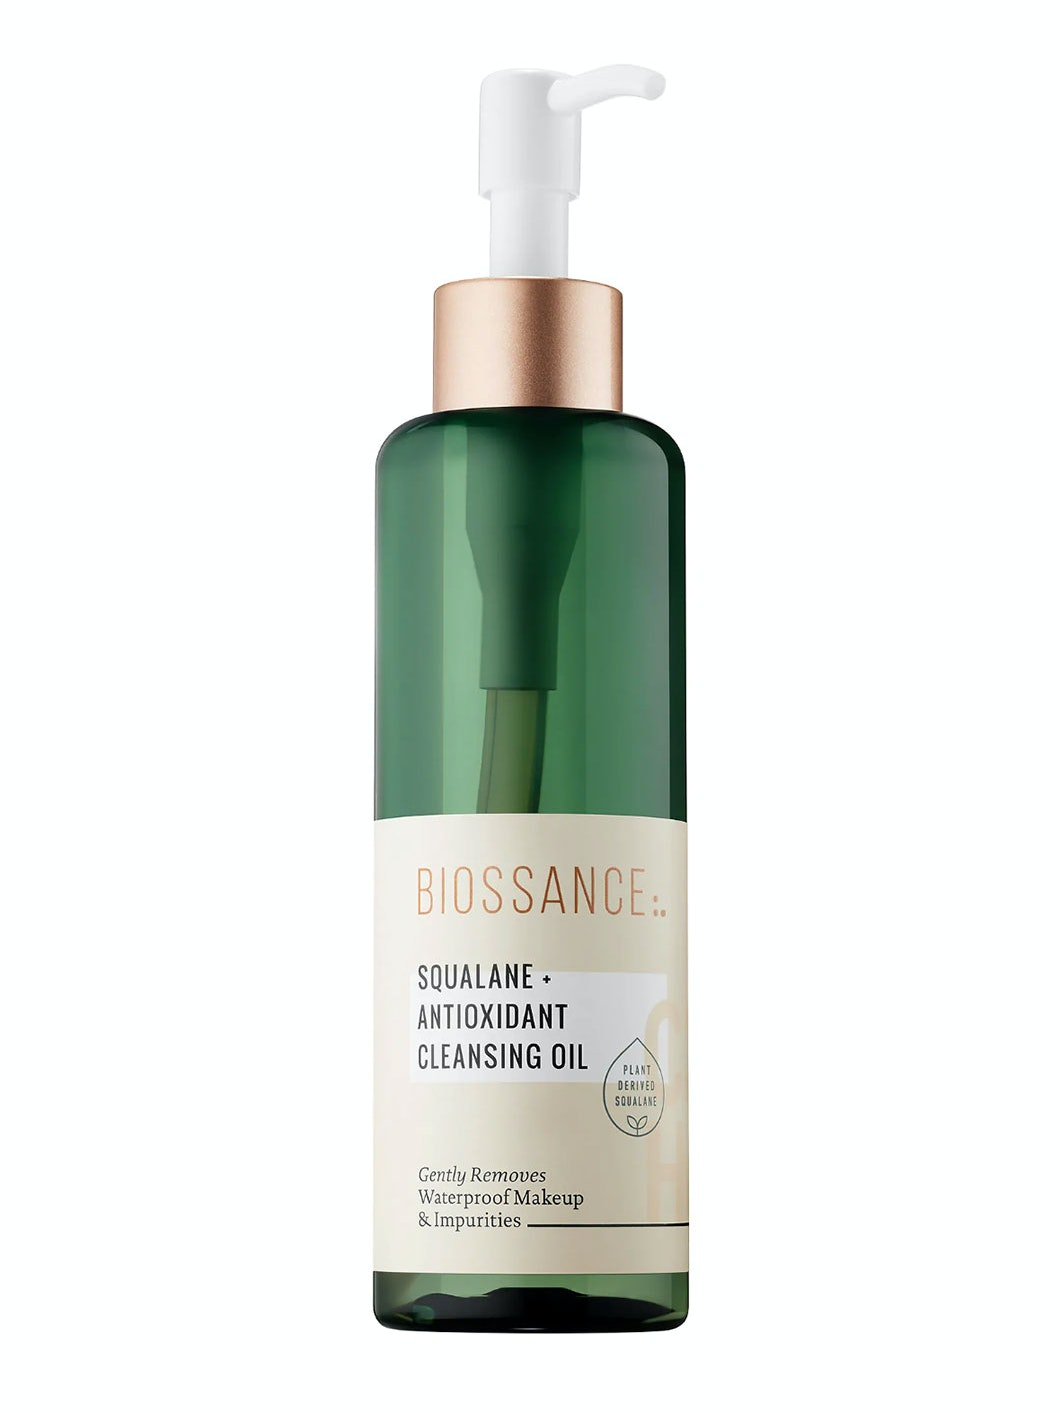 Biossance Squalene + Antioxidant Cleansing Oil